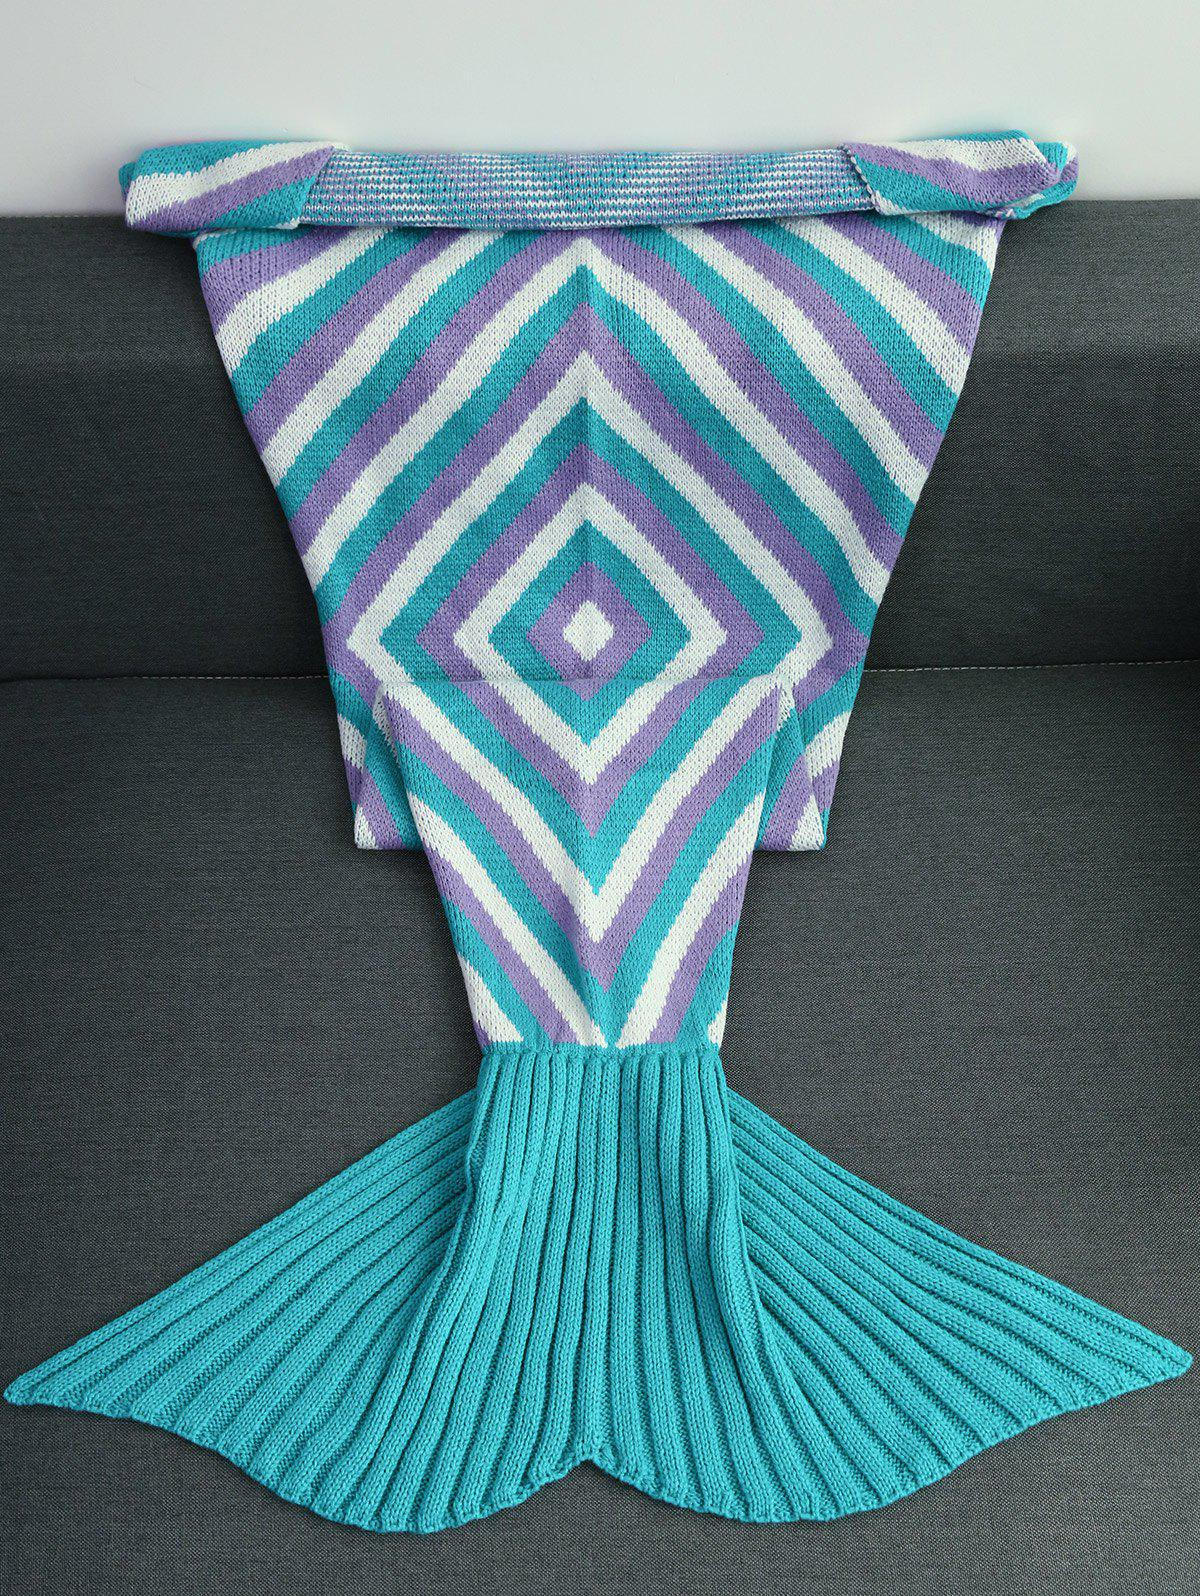 2018 High Quality Geometry Pattern Crochet Knitted Mermaid Tail